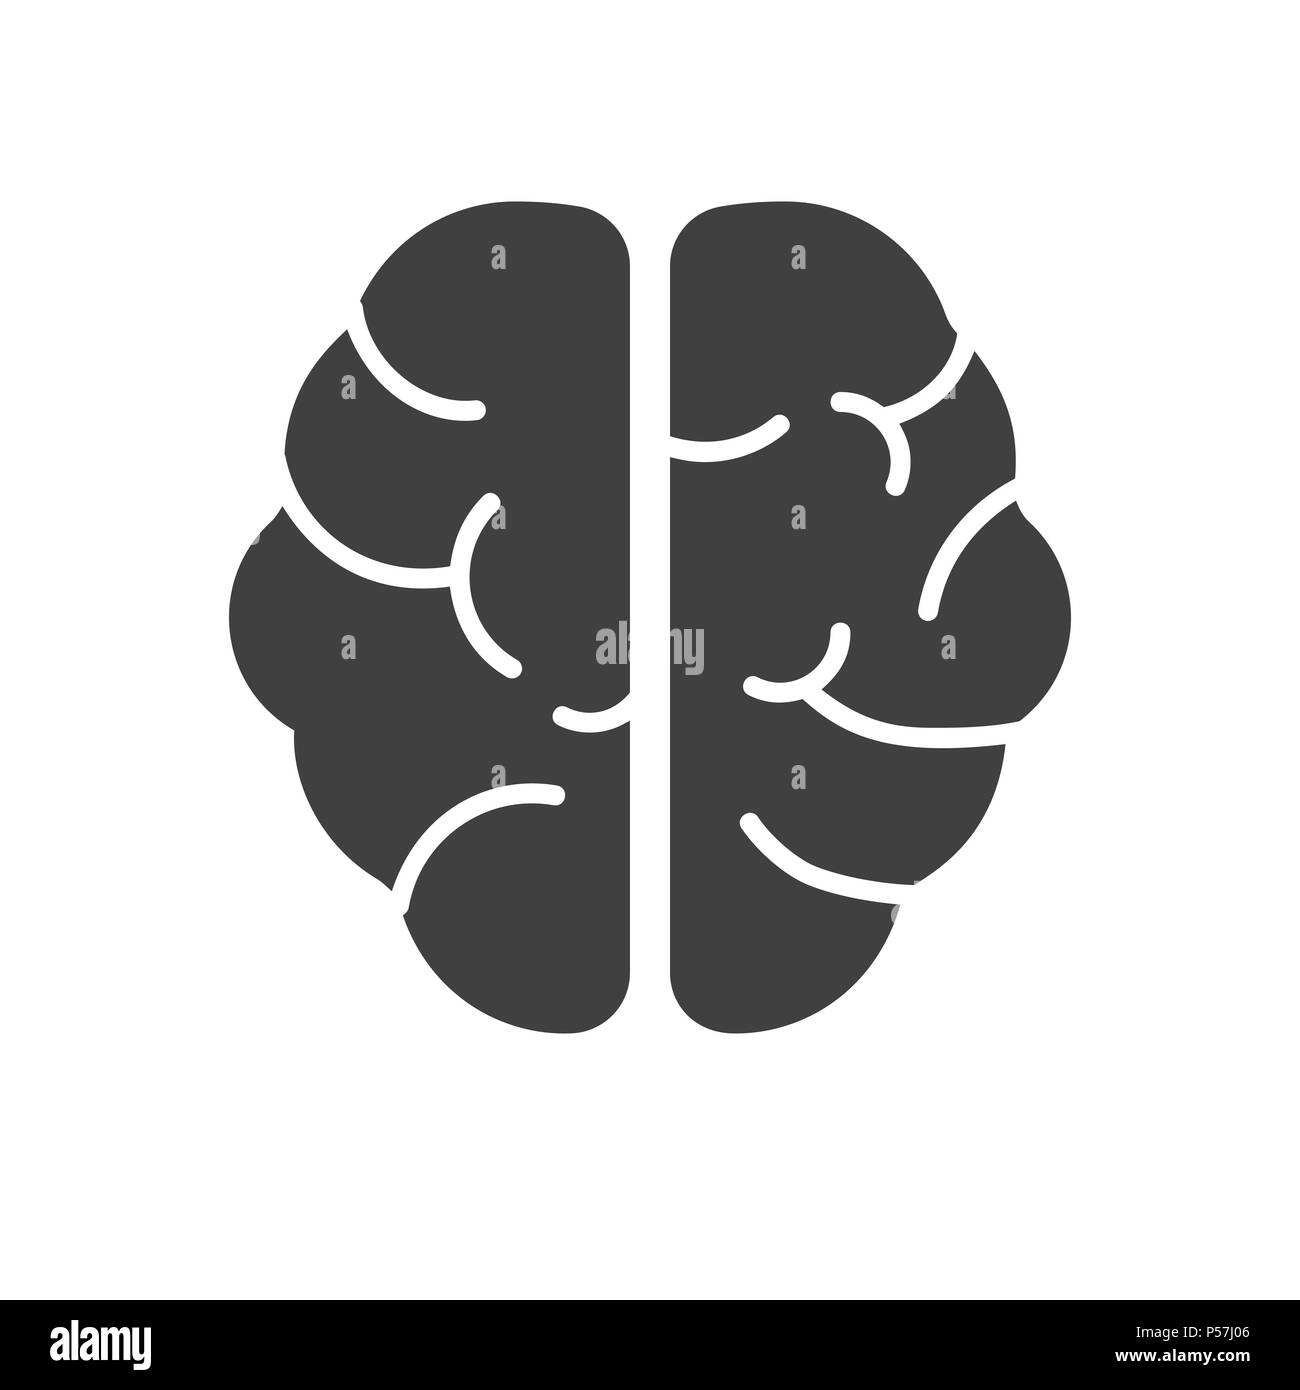 Human Brain Glyph Vector Icon. Isolated on the White Background. Editable EPS file. Vector illustration. - Stock Vector